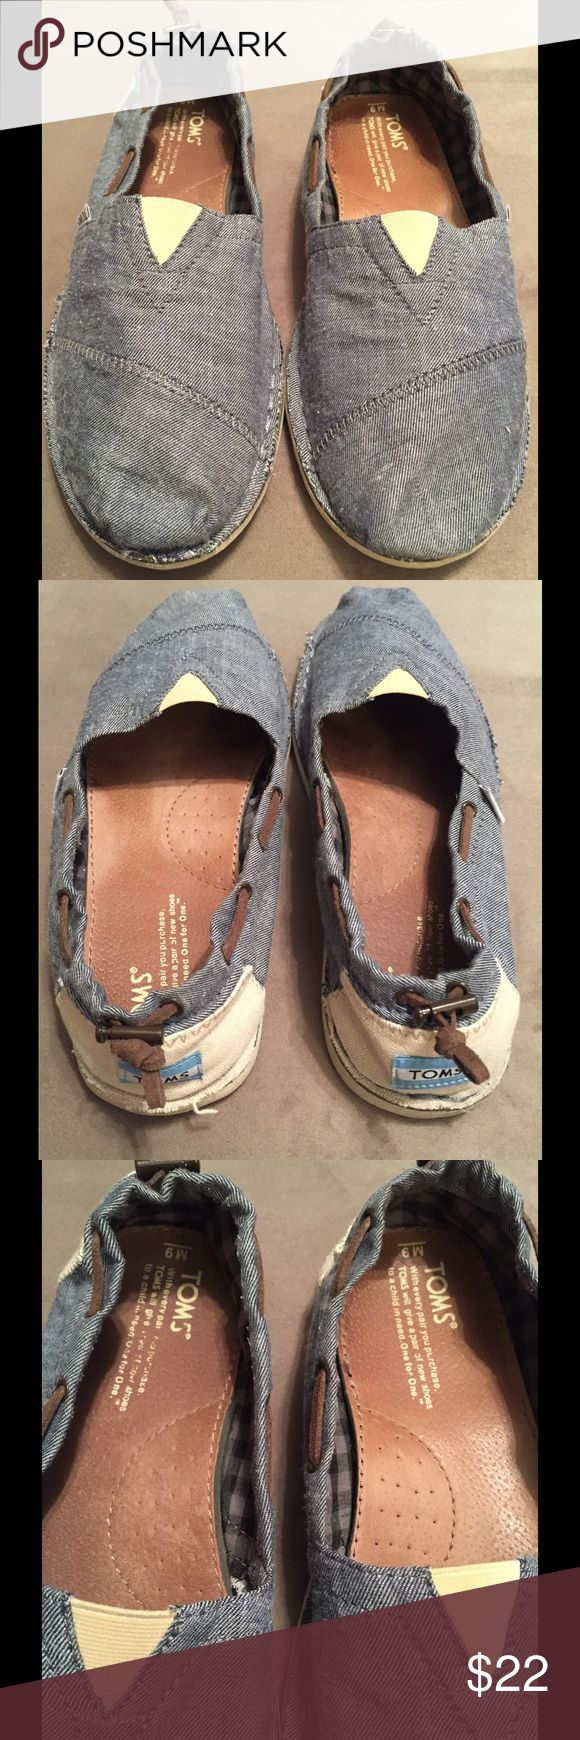 Men's TOMS chambray size 9 shoes Like new. Smoke free home TOMS Shoes Loafers & Slip-Ons